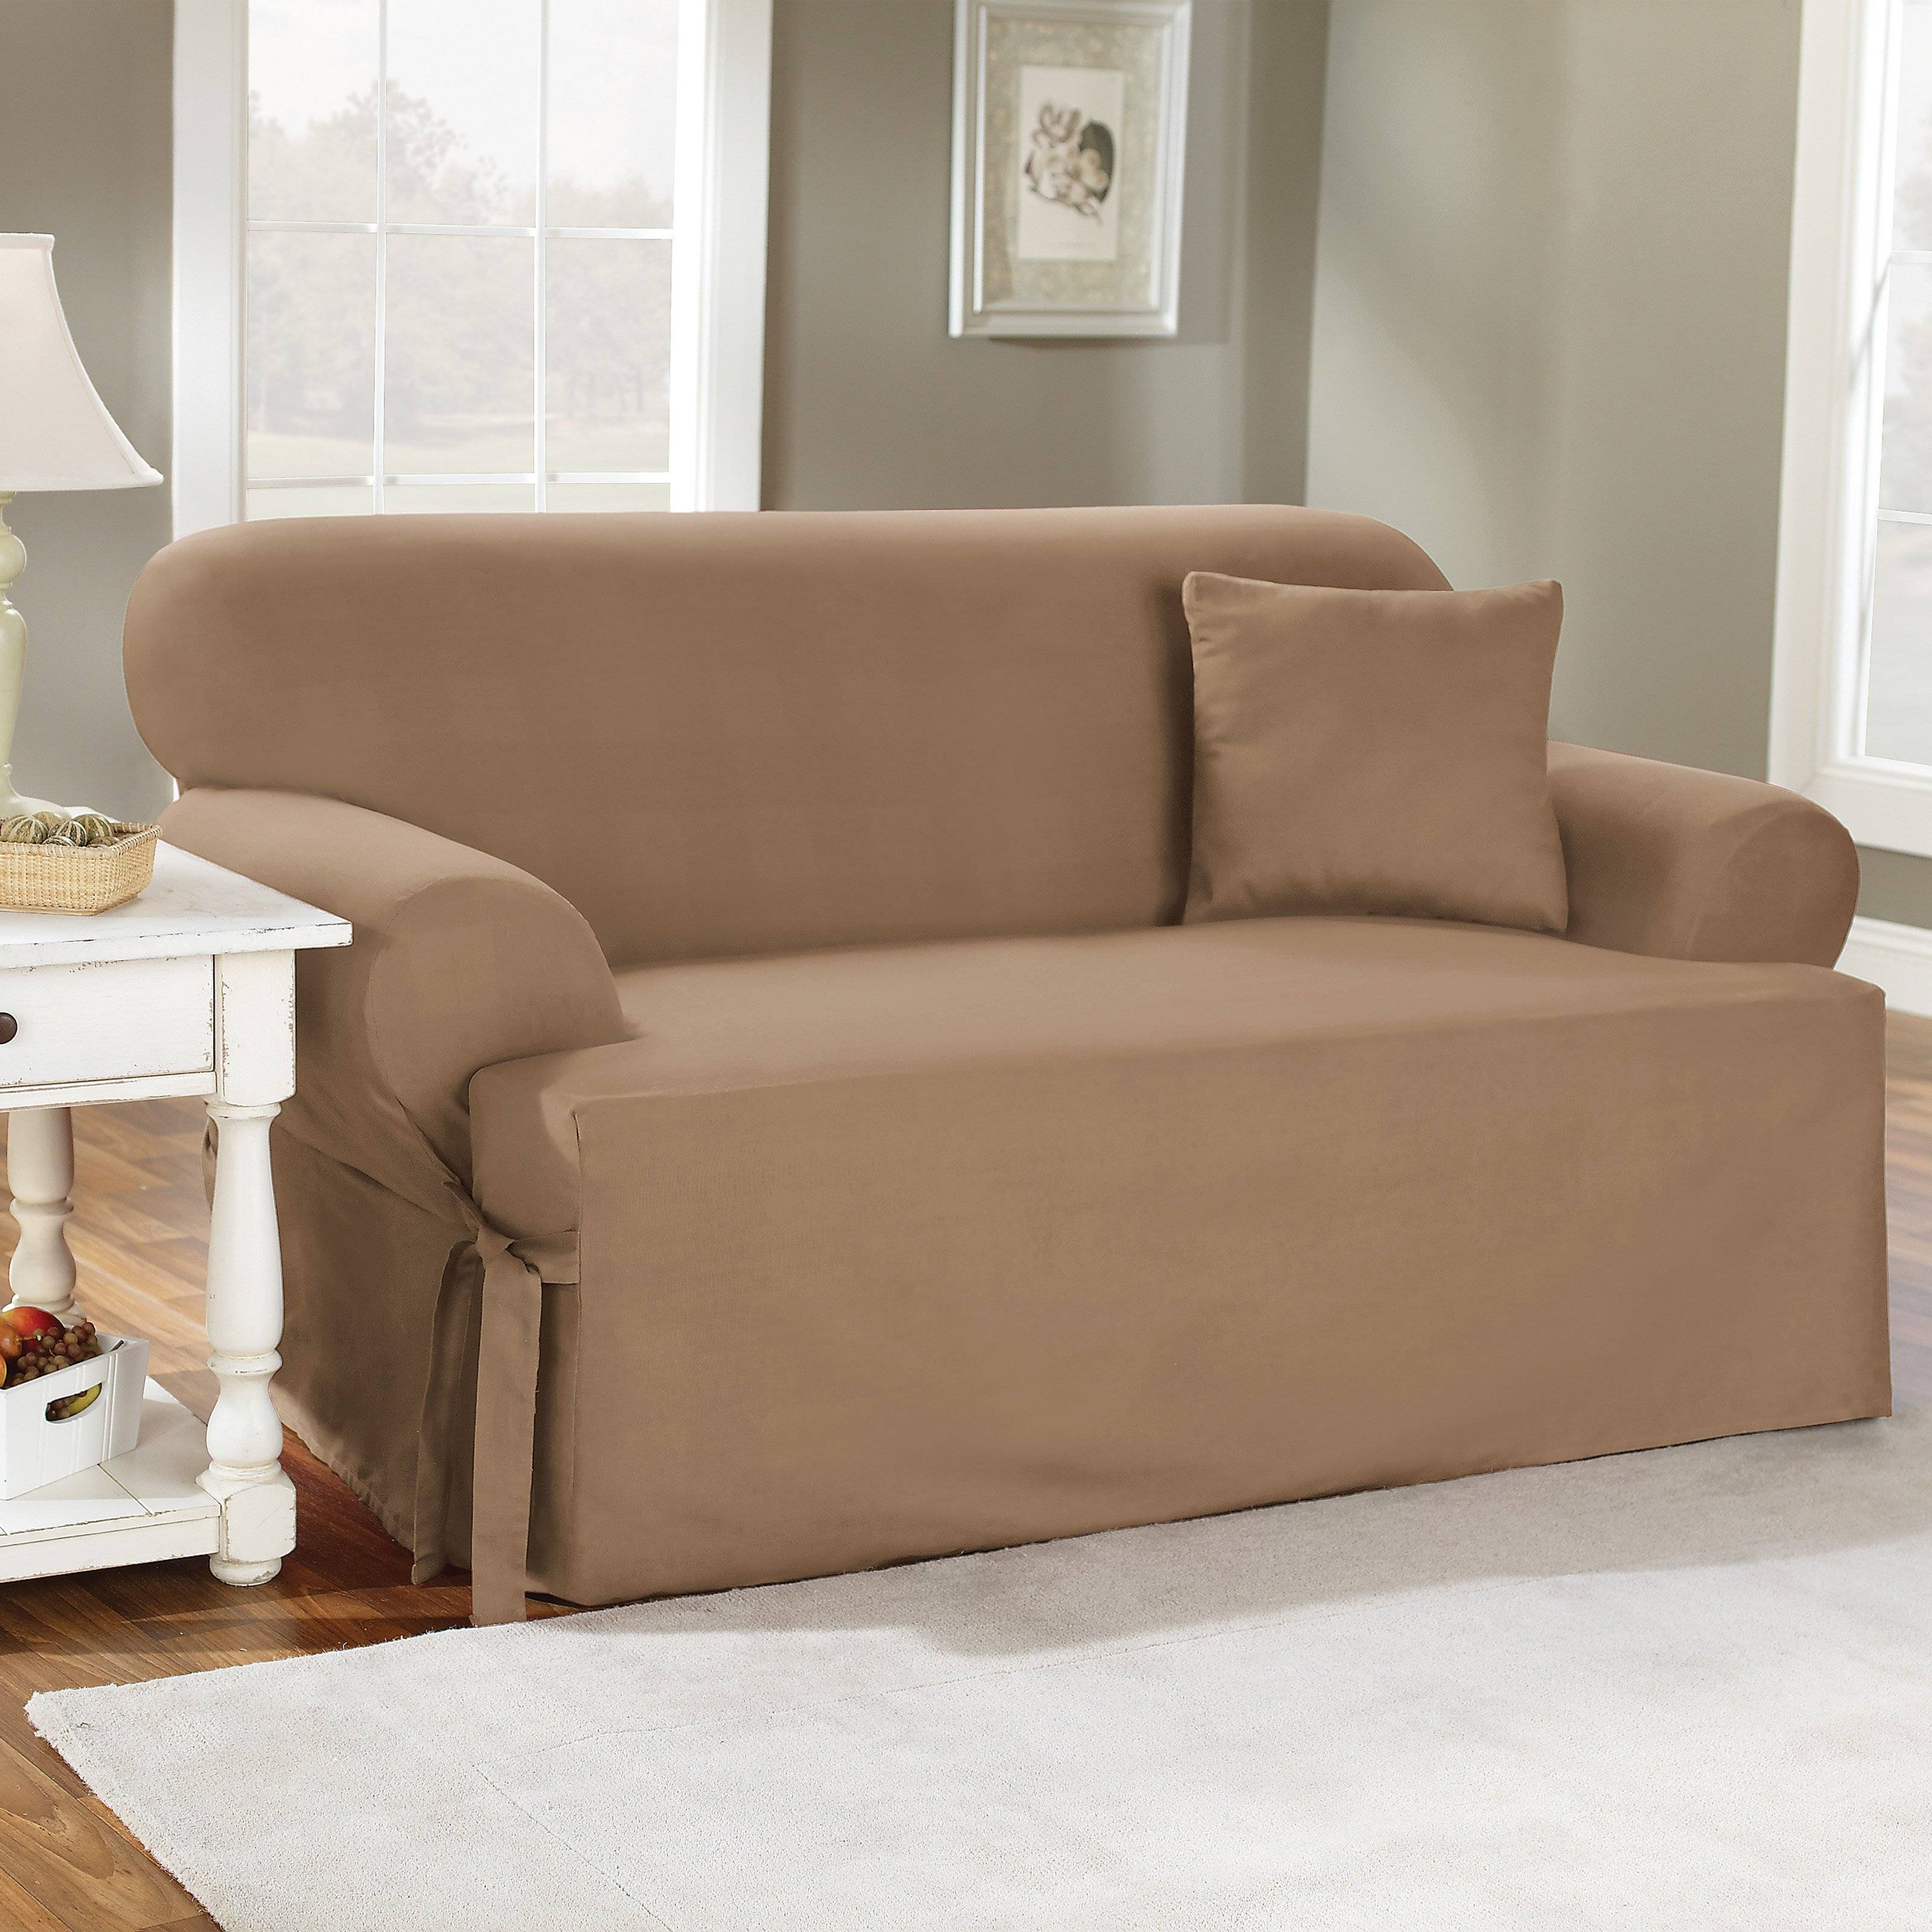 Sofa: Reclining Couch Covers | Sofa Covers For Recliners intended for Slipcover for Reclining Sofas (Image 11 of 15)